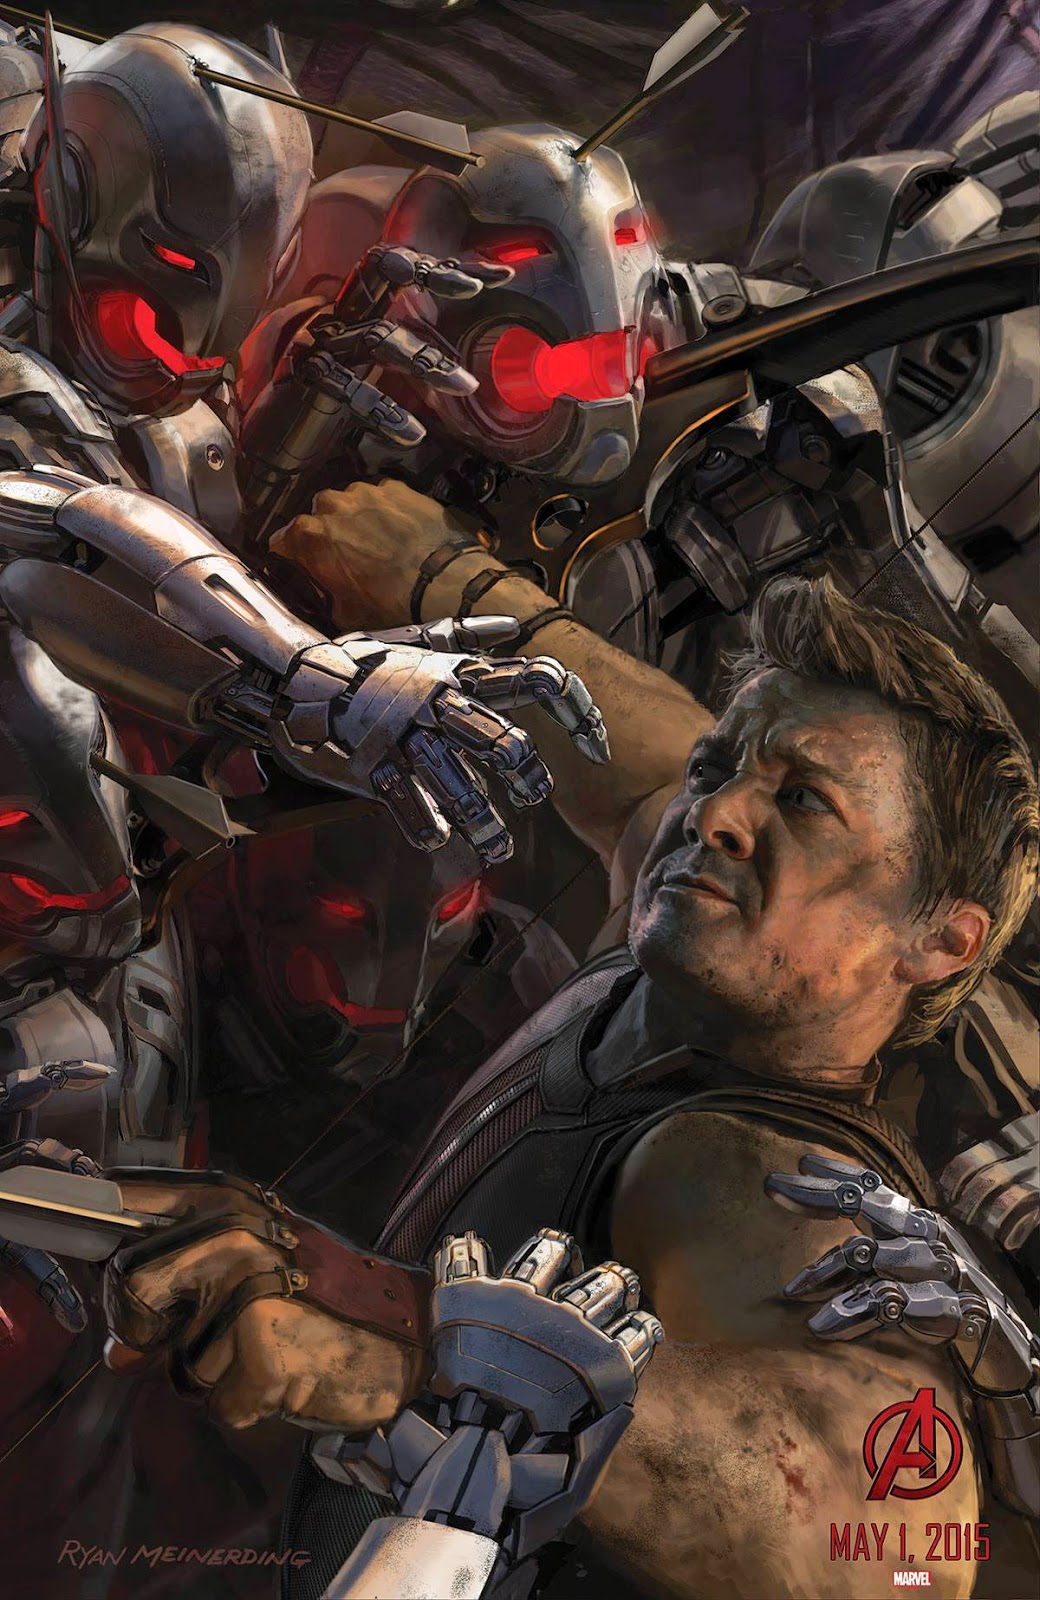 News and rumors on Hawkeye from Avengers Age of Ultron